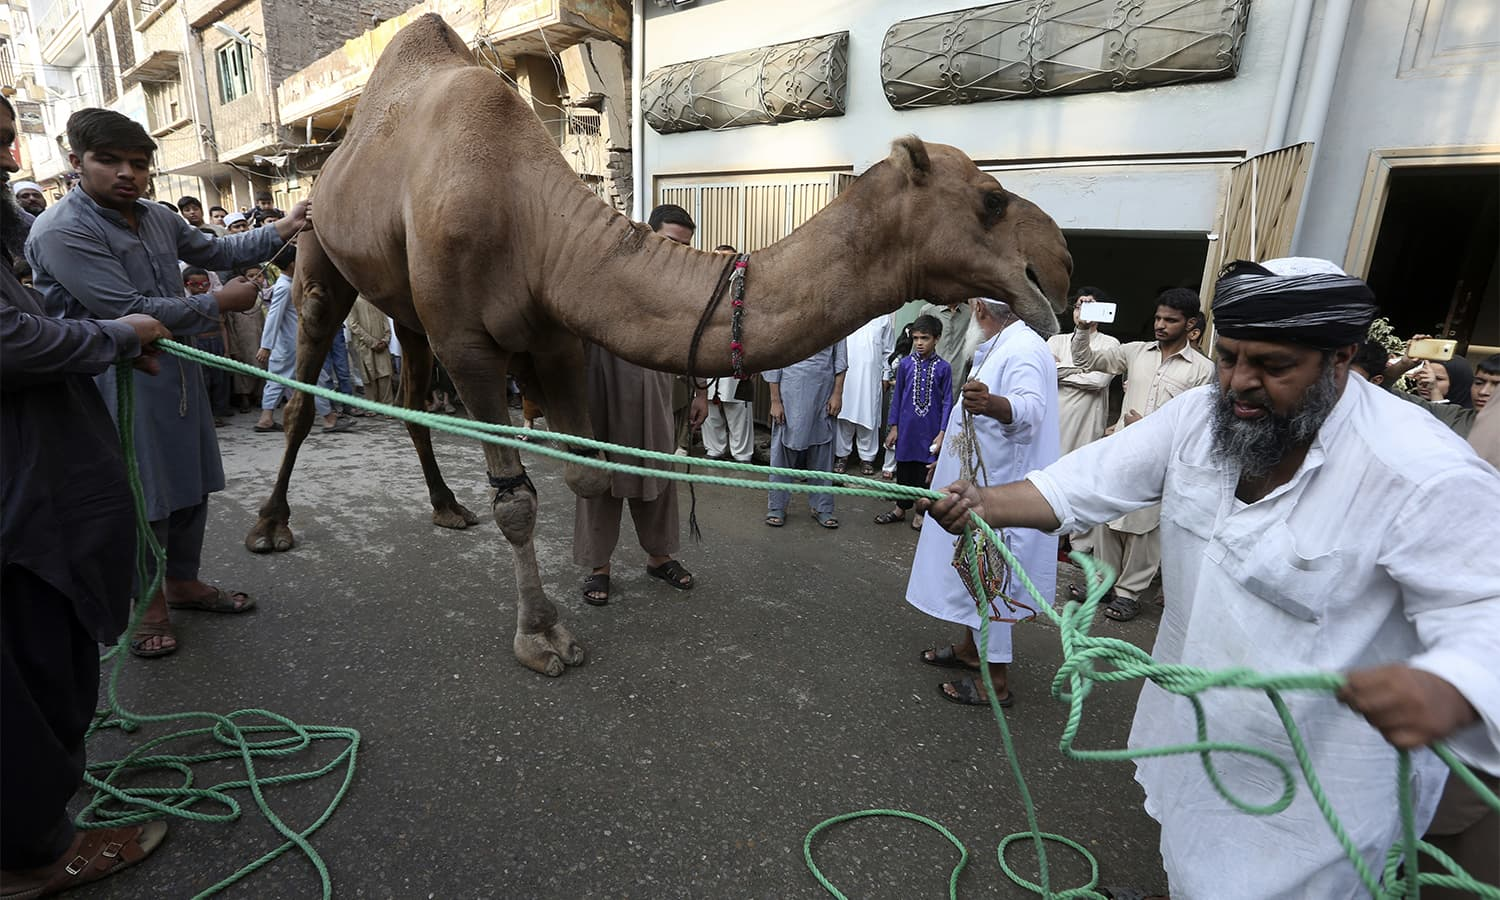 People prepare to slaughter a camel on the first day of Eidul Azha in Karachi, Pakistan.—AP